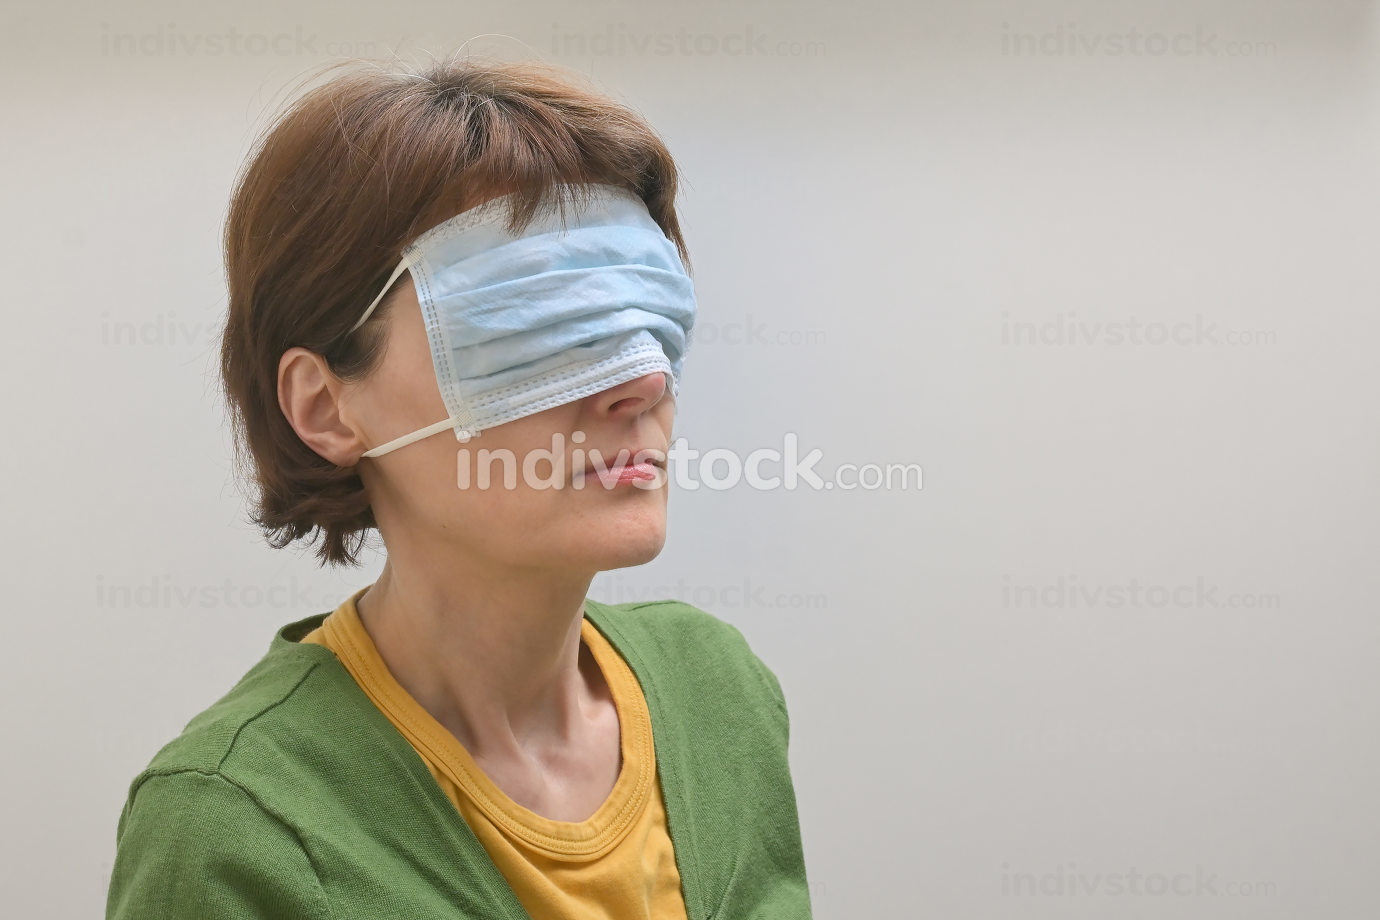 Woman With Medical, Surgical Mask Cover On Her Face